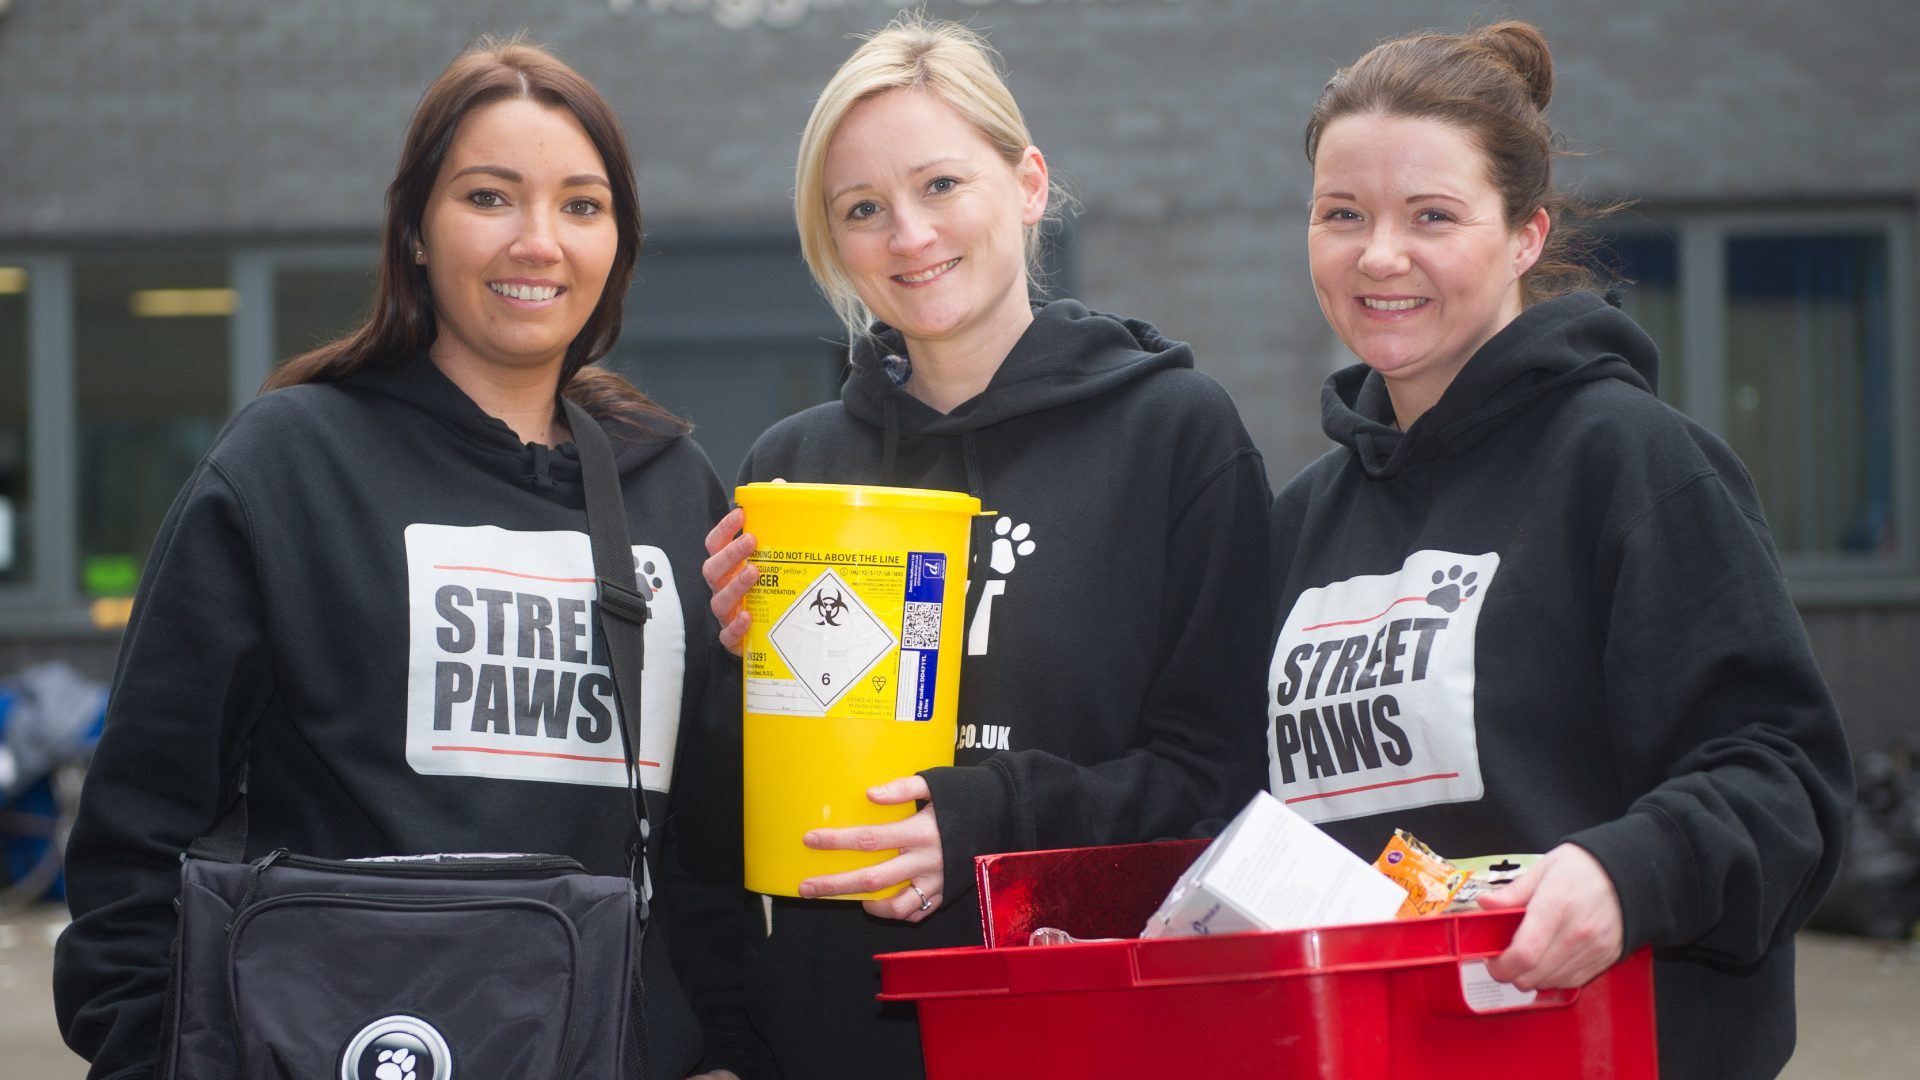 Vet team lends a paw for dogs belonging to the homeless